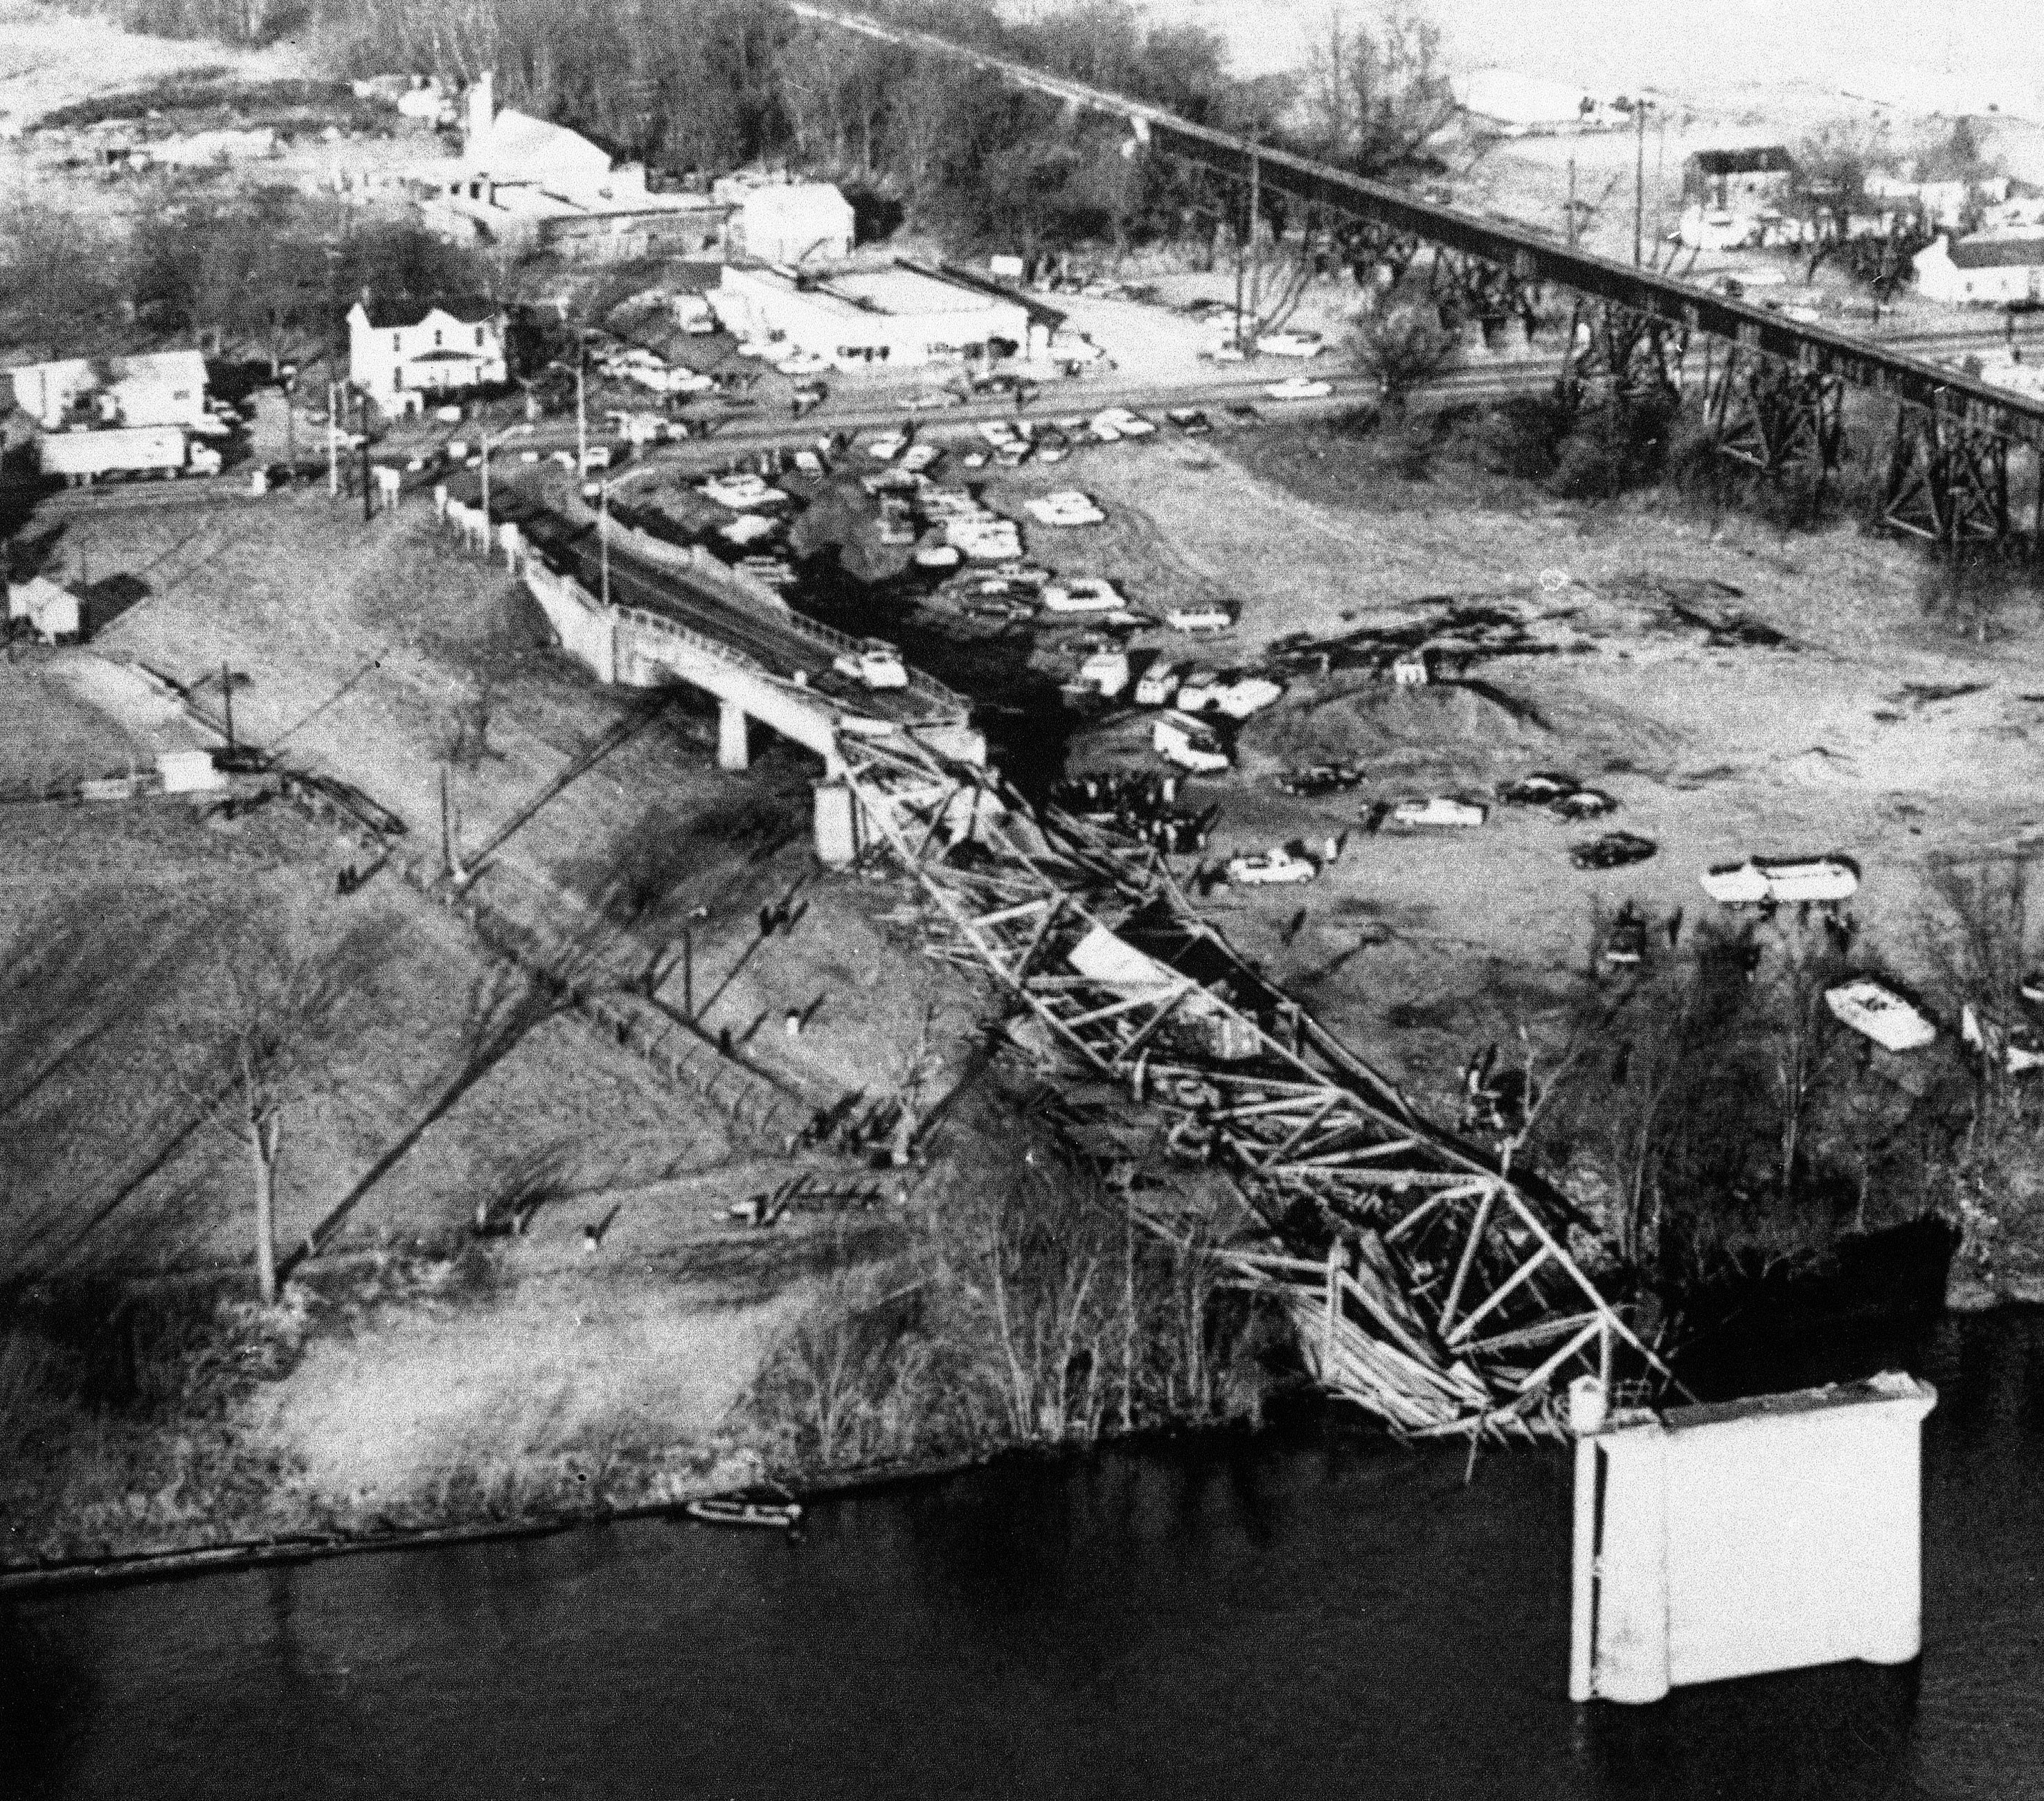 The deadliest bridge disaster in US history was caused by a